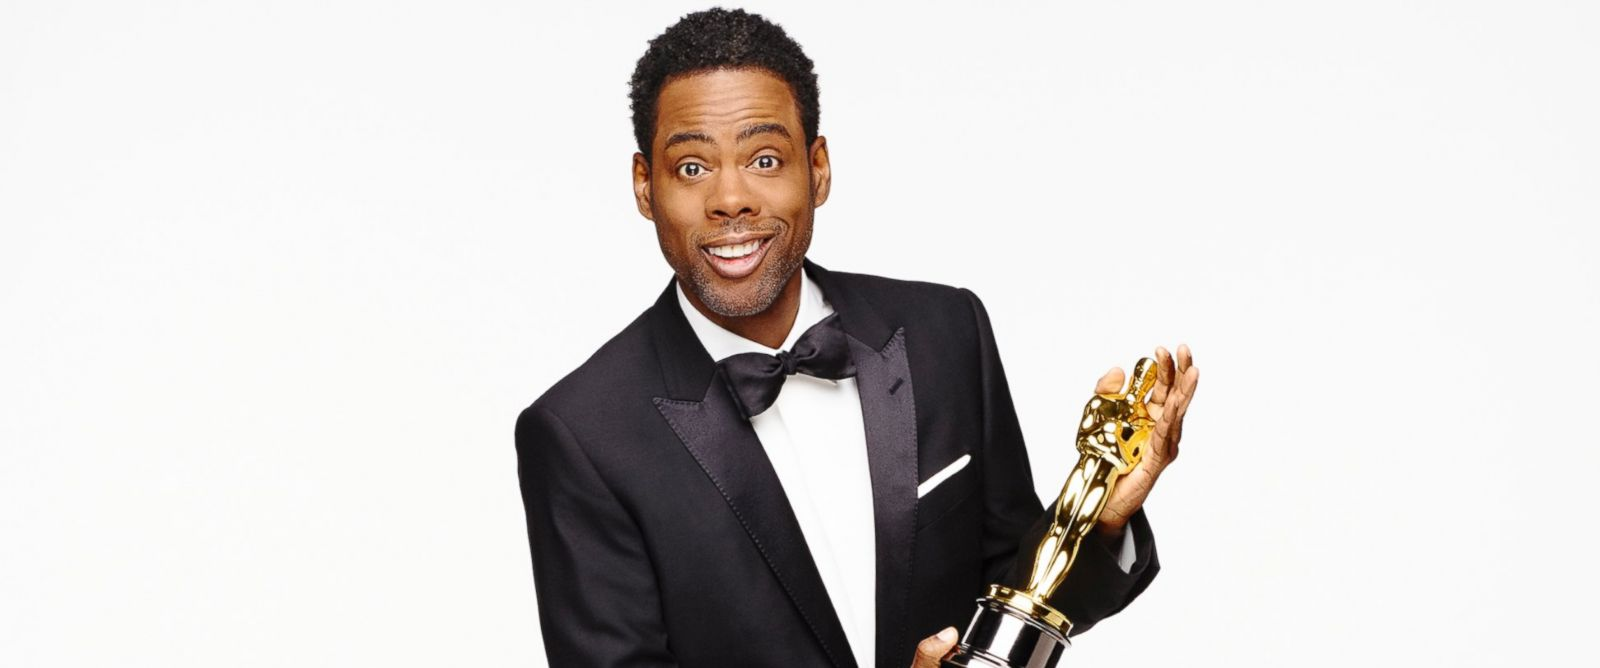 chris rock never scared onlinechris rock stand up, chris rock never scared, chris rock movies, chris rock net worth, chris rock films, chris rock father, chris rock bigger and blacker, chris rock 2017, chris rock never scared online, chris rock jump, chris rock instagram, chris rock brother, chris rock stand up 2016, chris rock wiki, chris rock измены, chris rock show, chris rock parents, chris rock mother, chris rock oscars, chris rock filmography